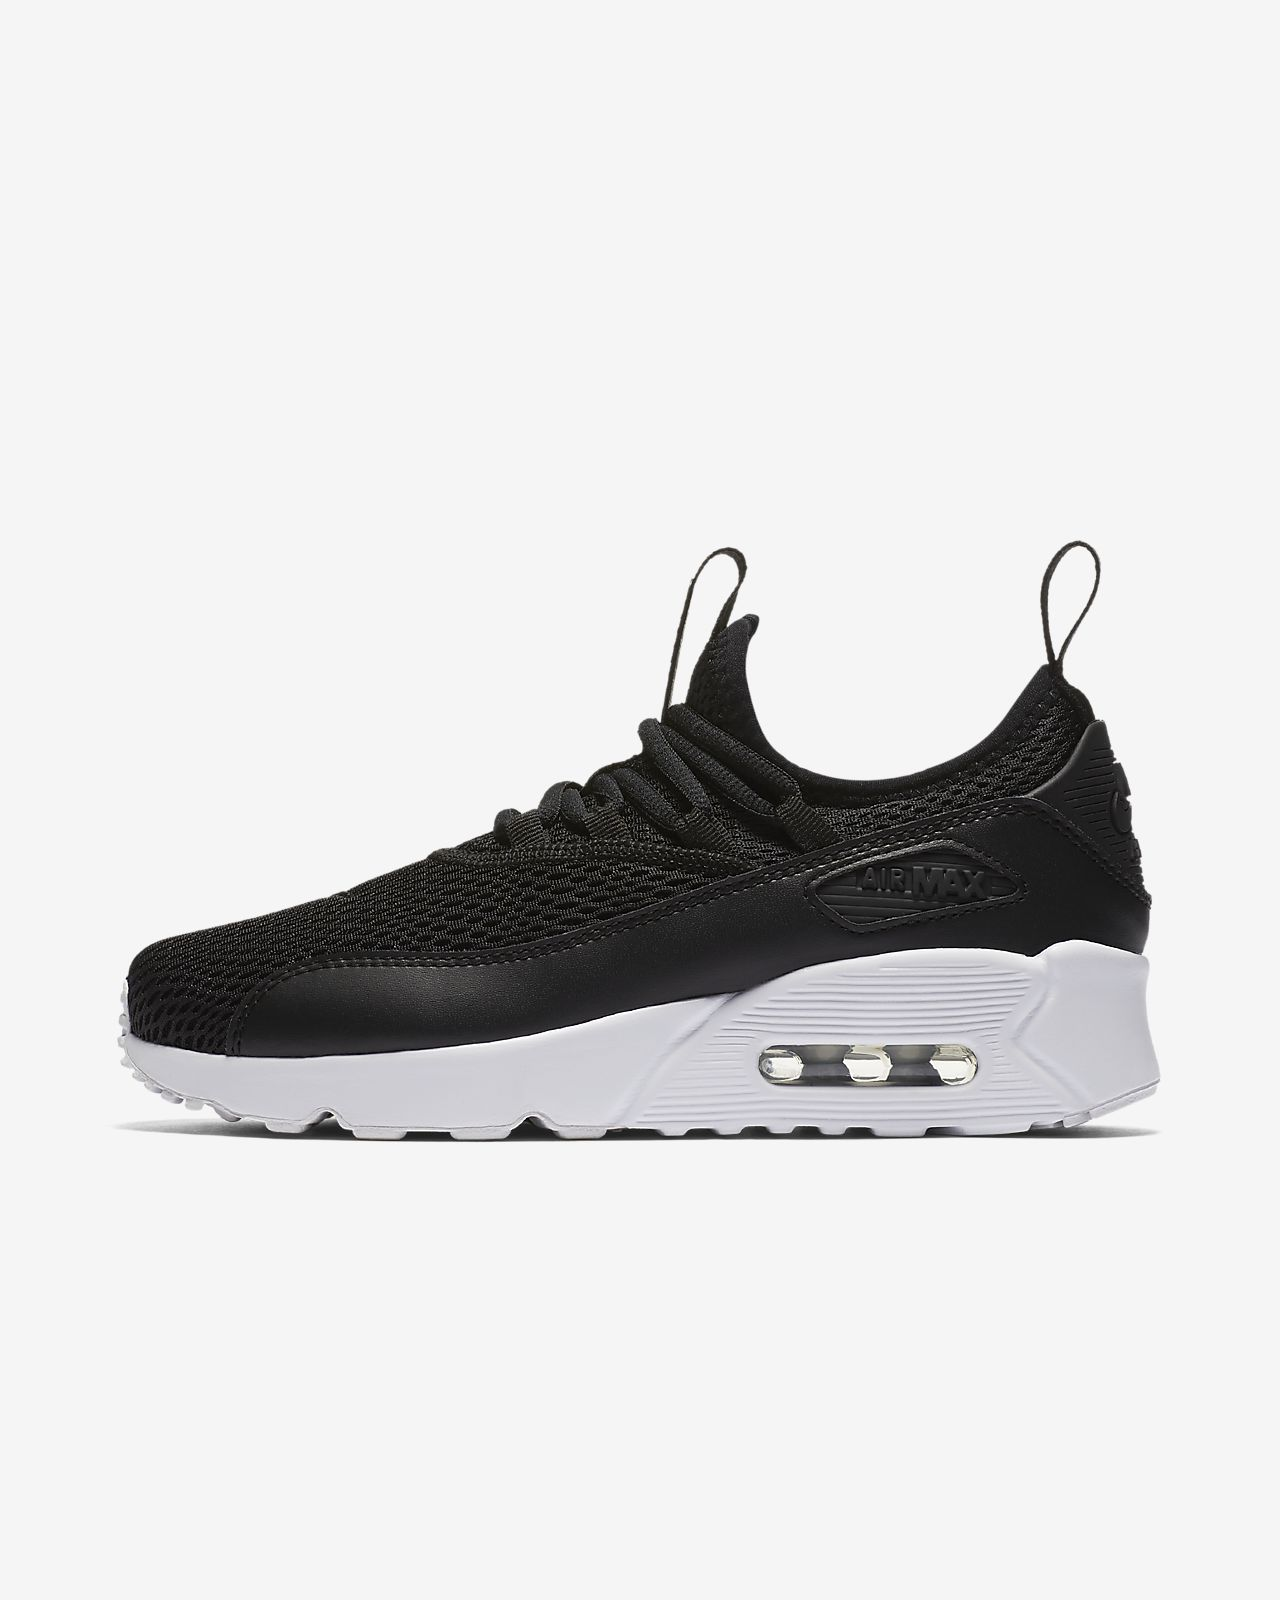 nike air max 90 ultra essential women's nz